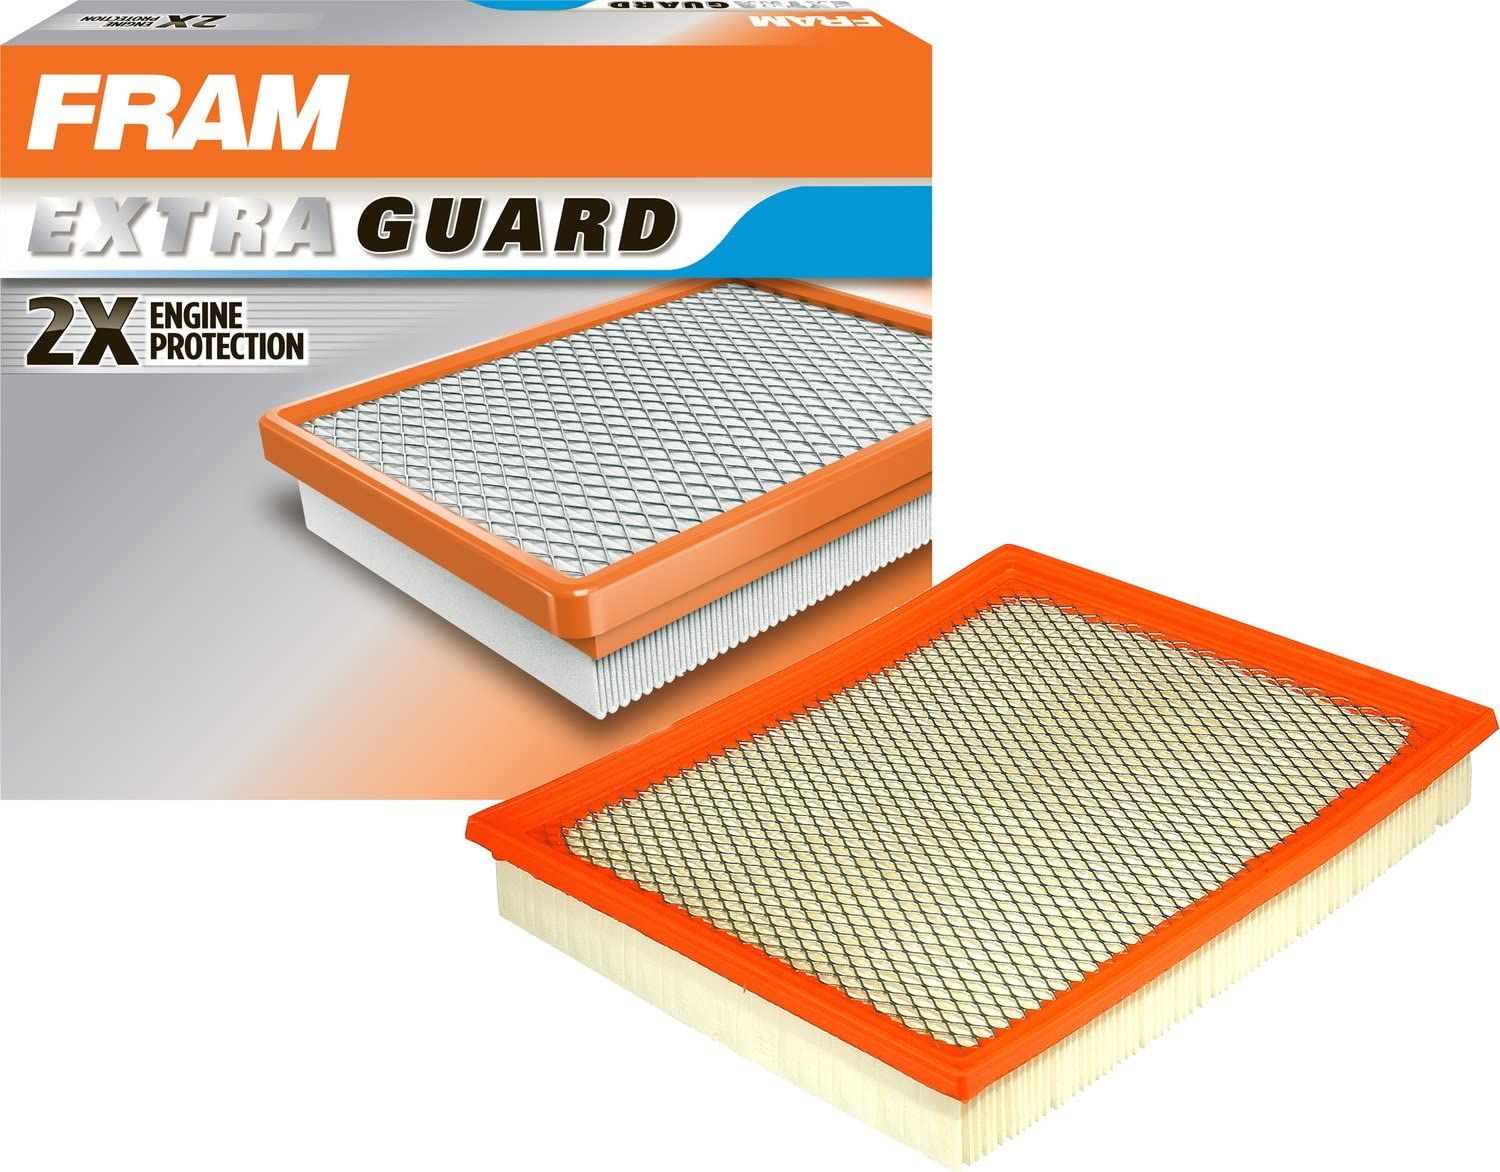 FRAM CA7440 Extra Guard Plastisol Air Filter